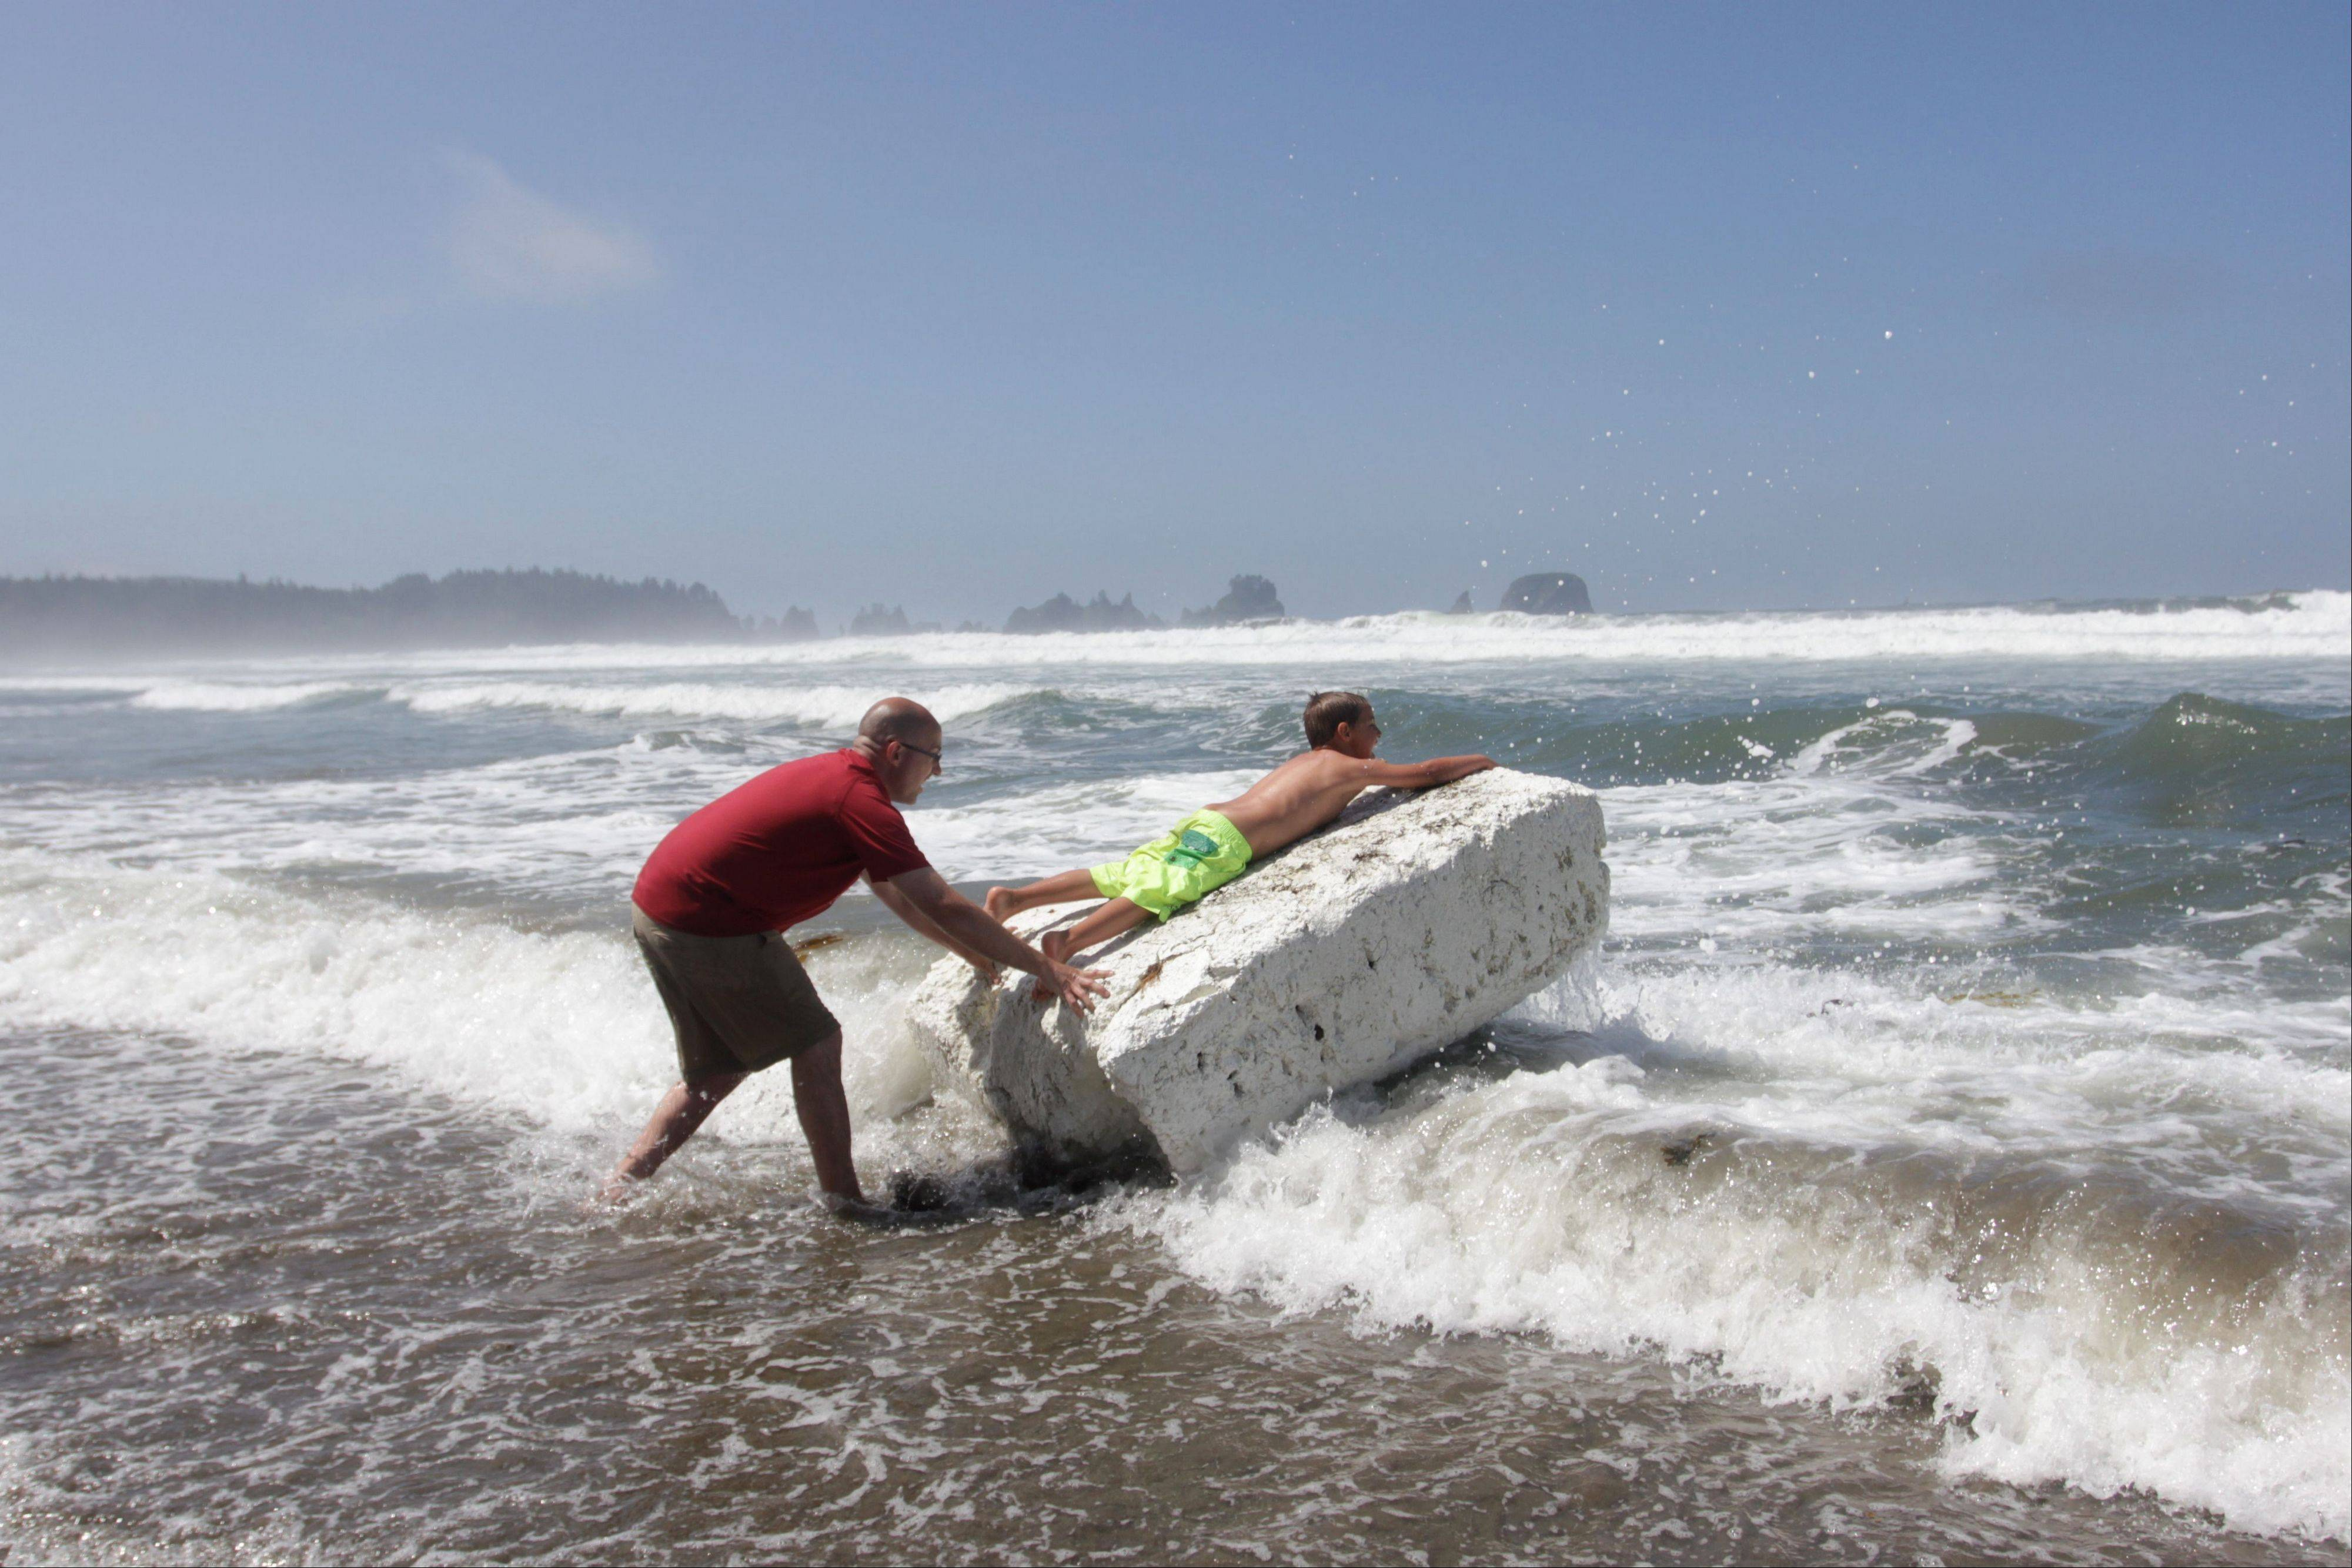 A young boy riding a block of Styrofoam is pushed into the waves by a man at Shi Shi Beach at Olympic National Park.